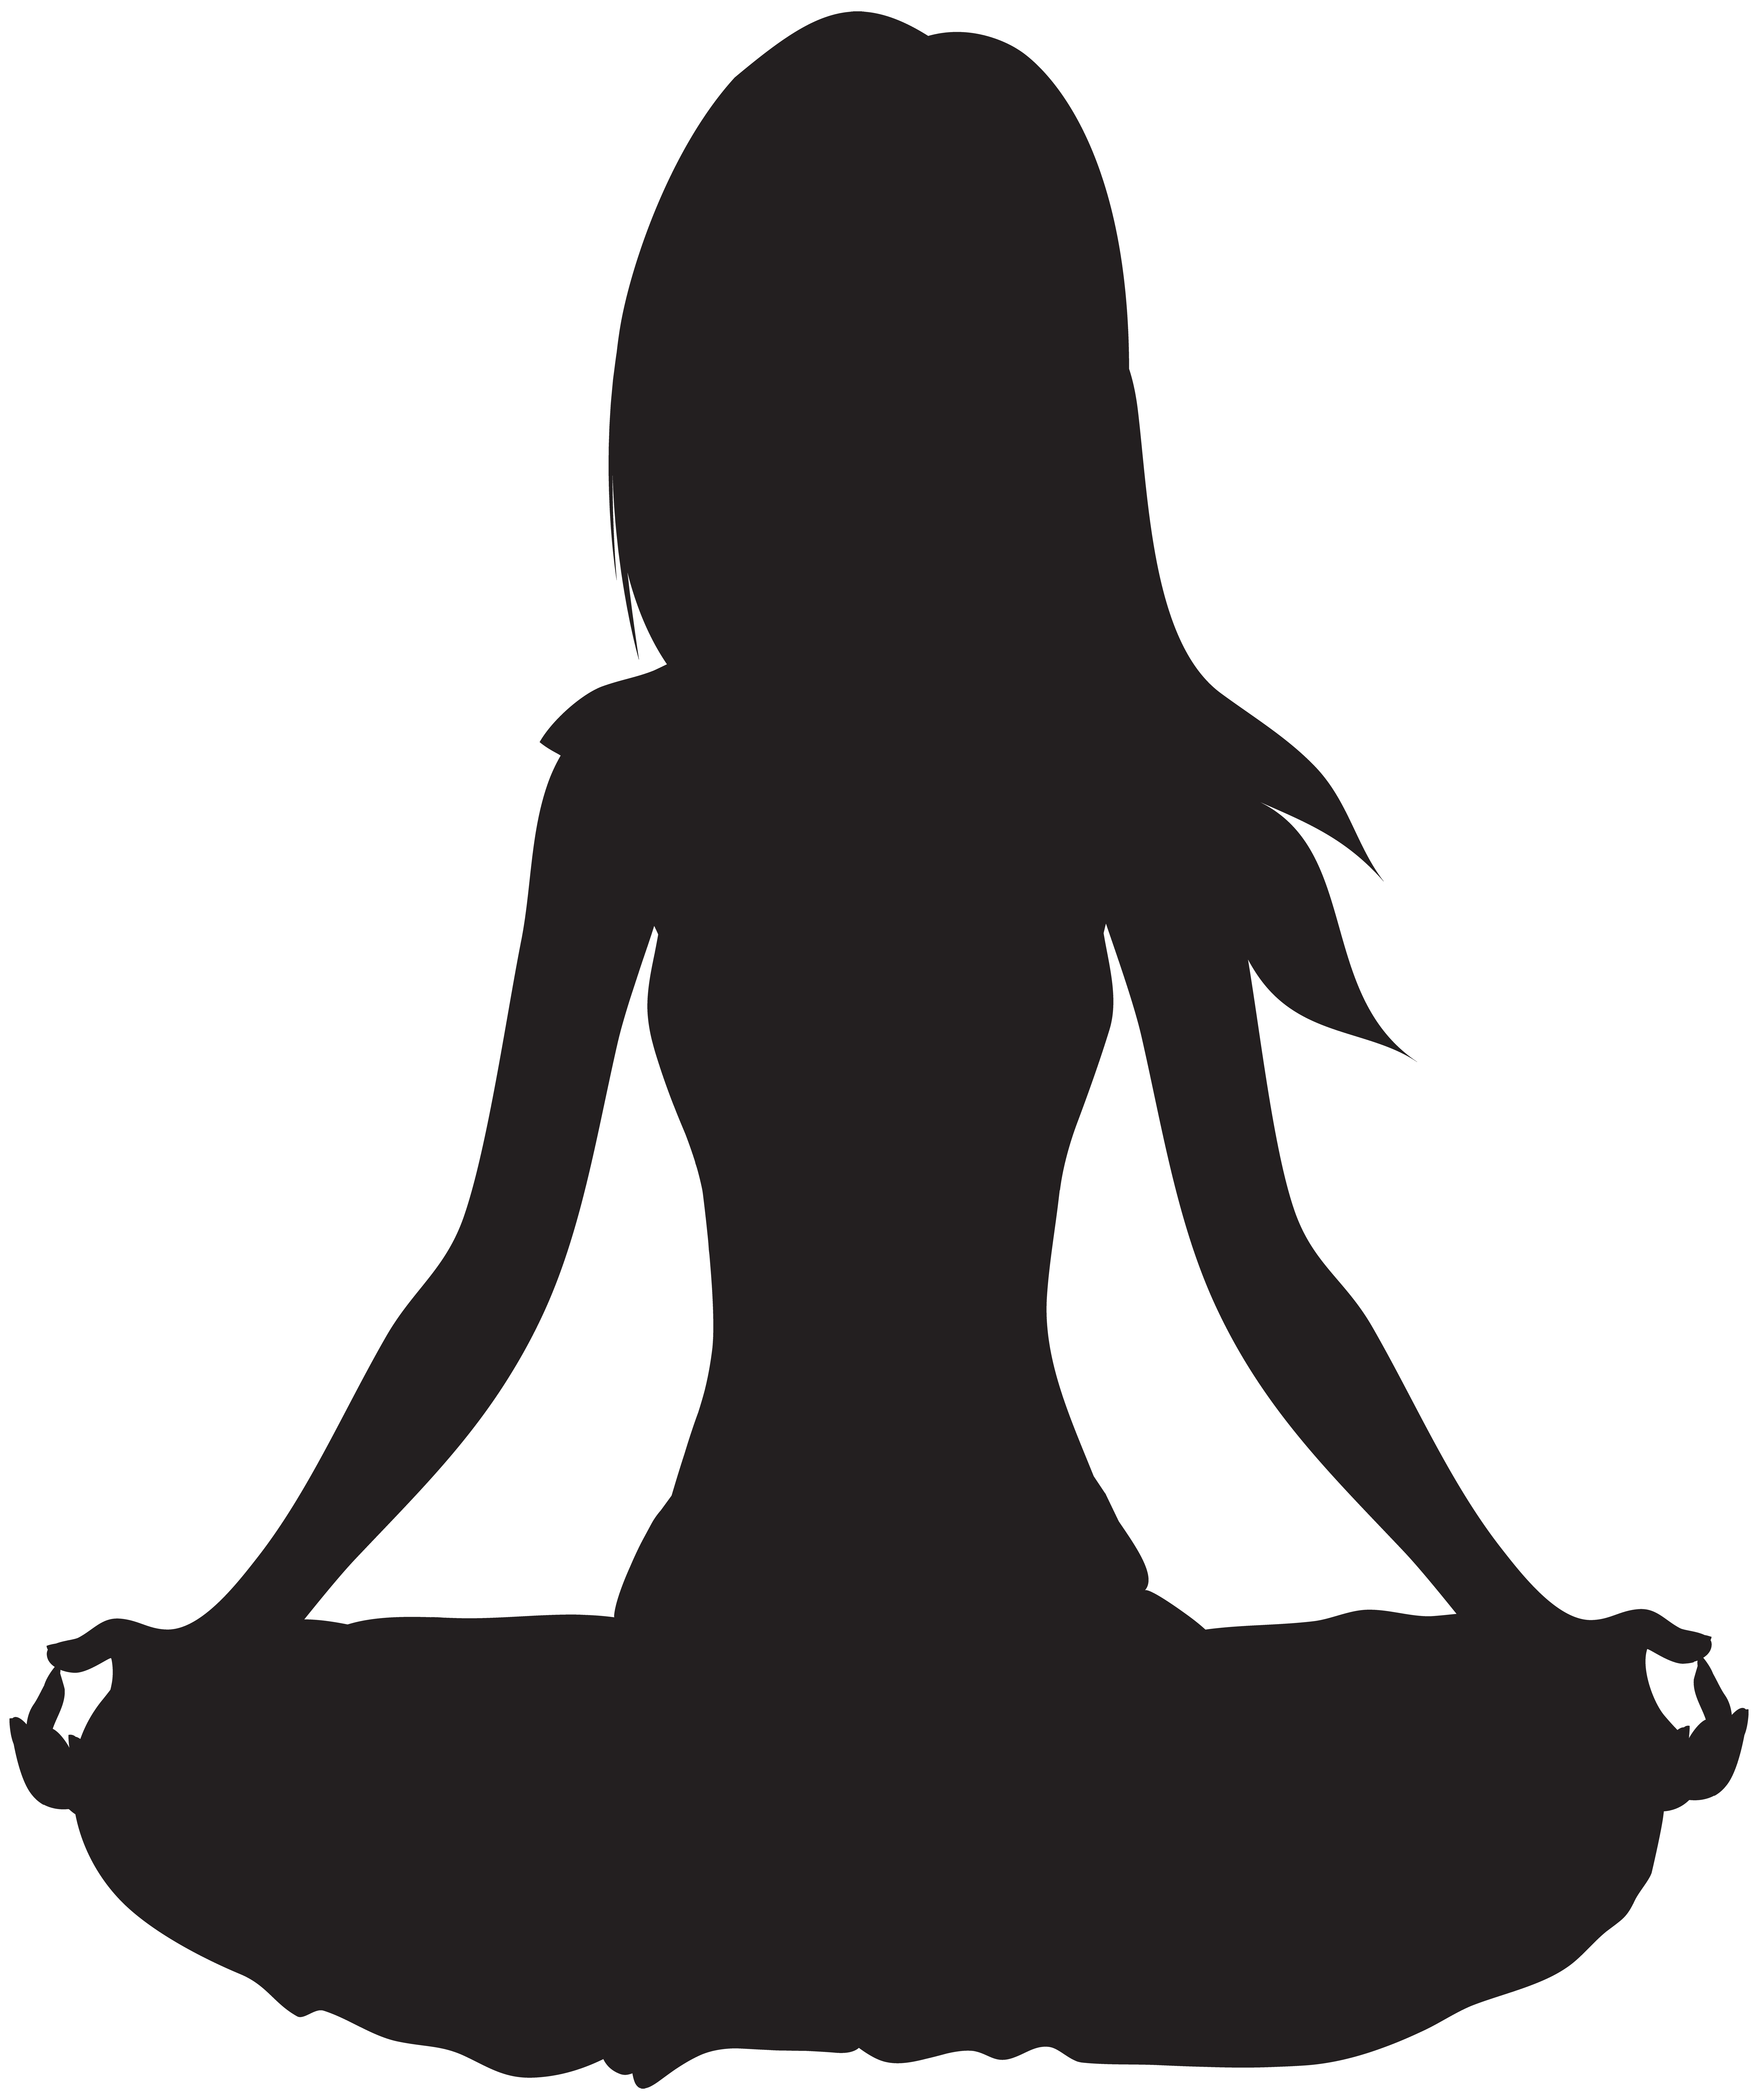 Meditation clipart. Meditate silhouette png clip